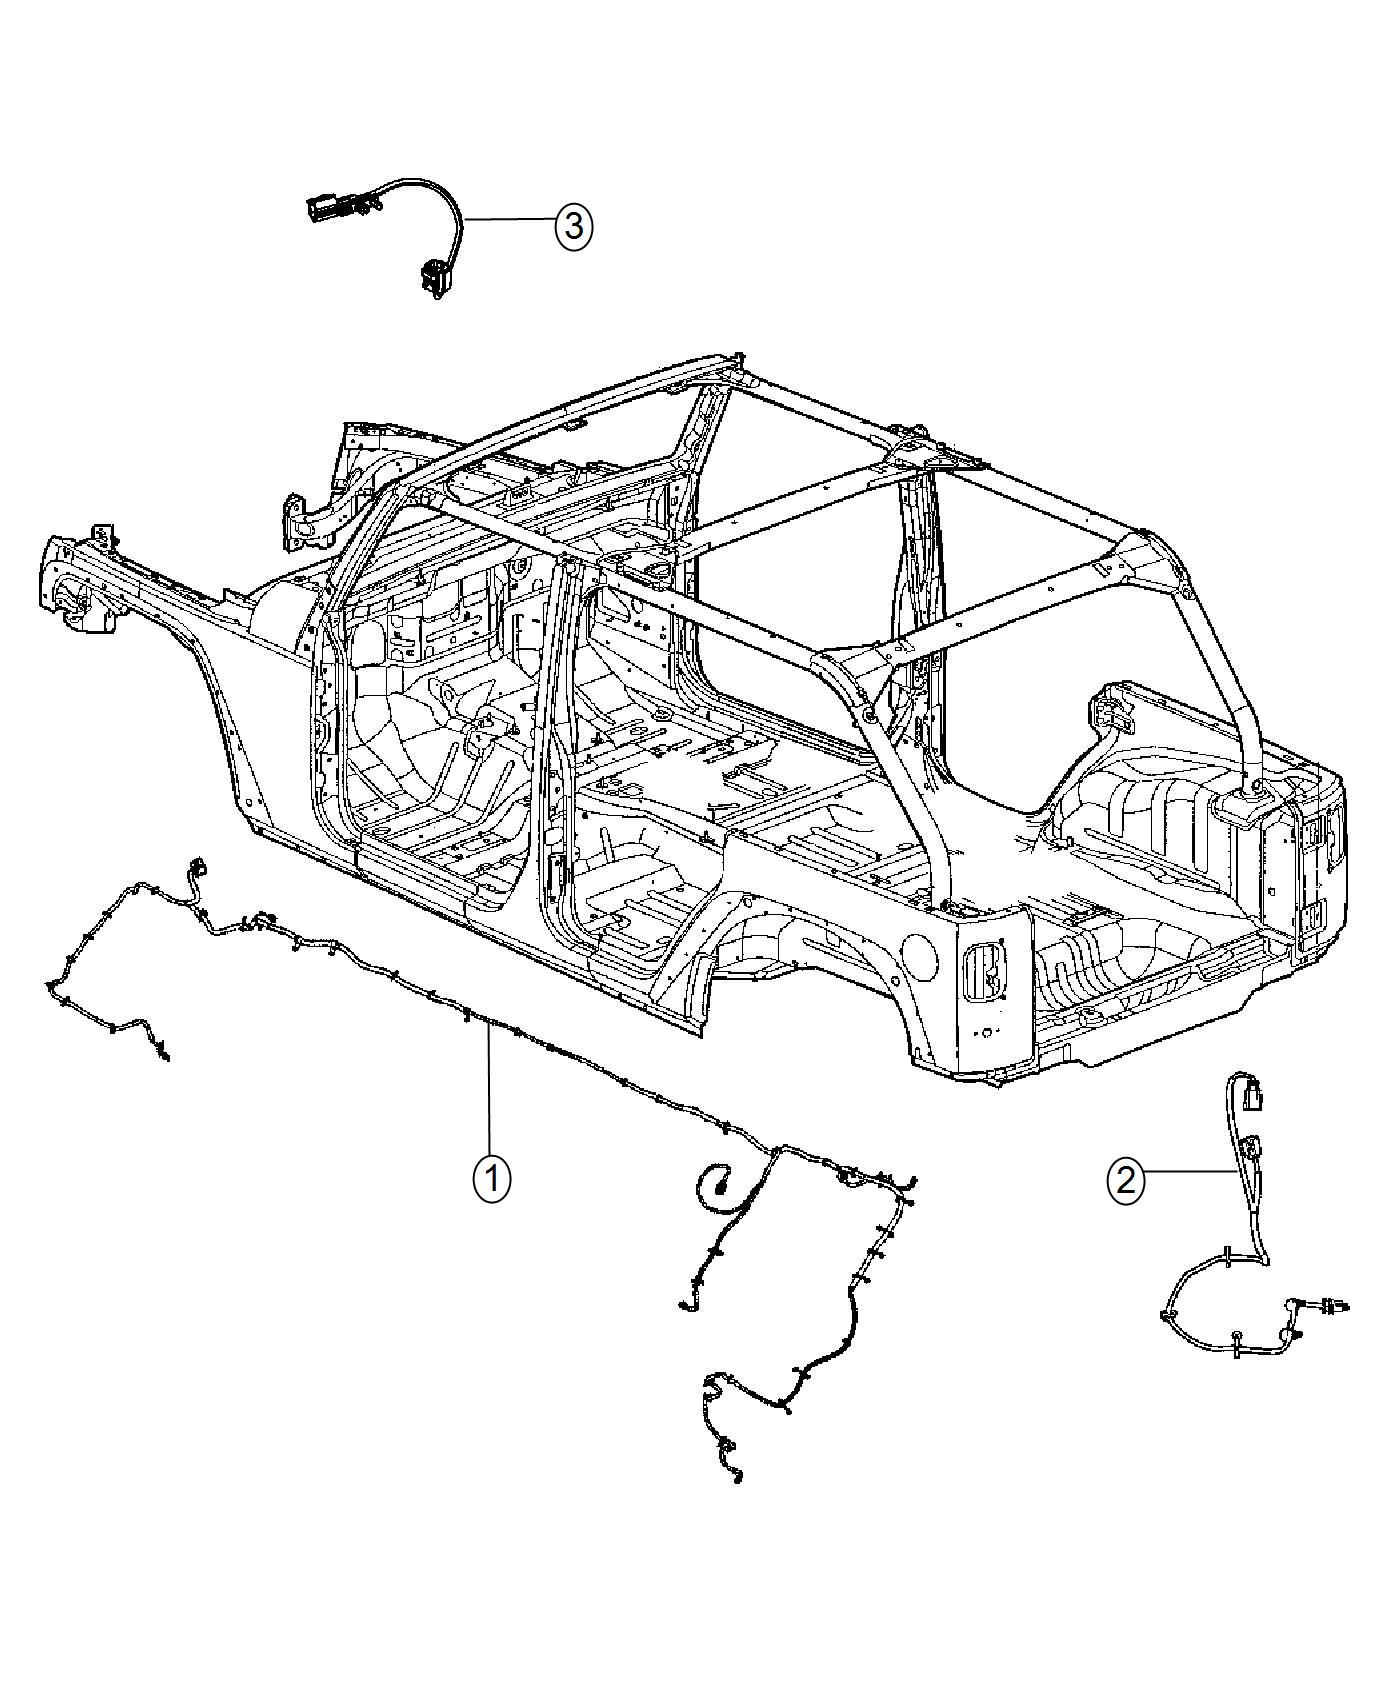 Jeep Wrangler Wiring. Chassis. [locker rear axle